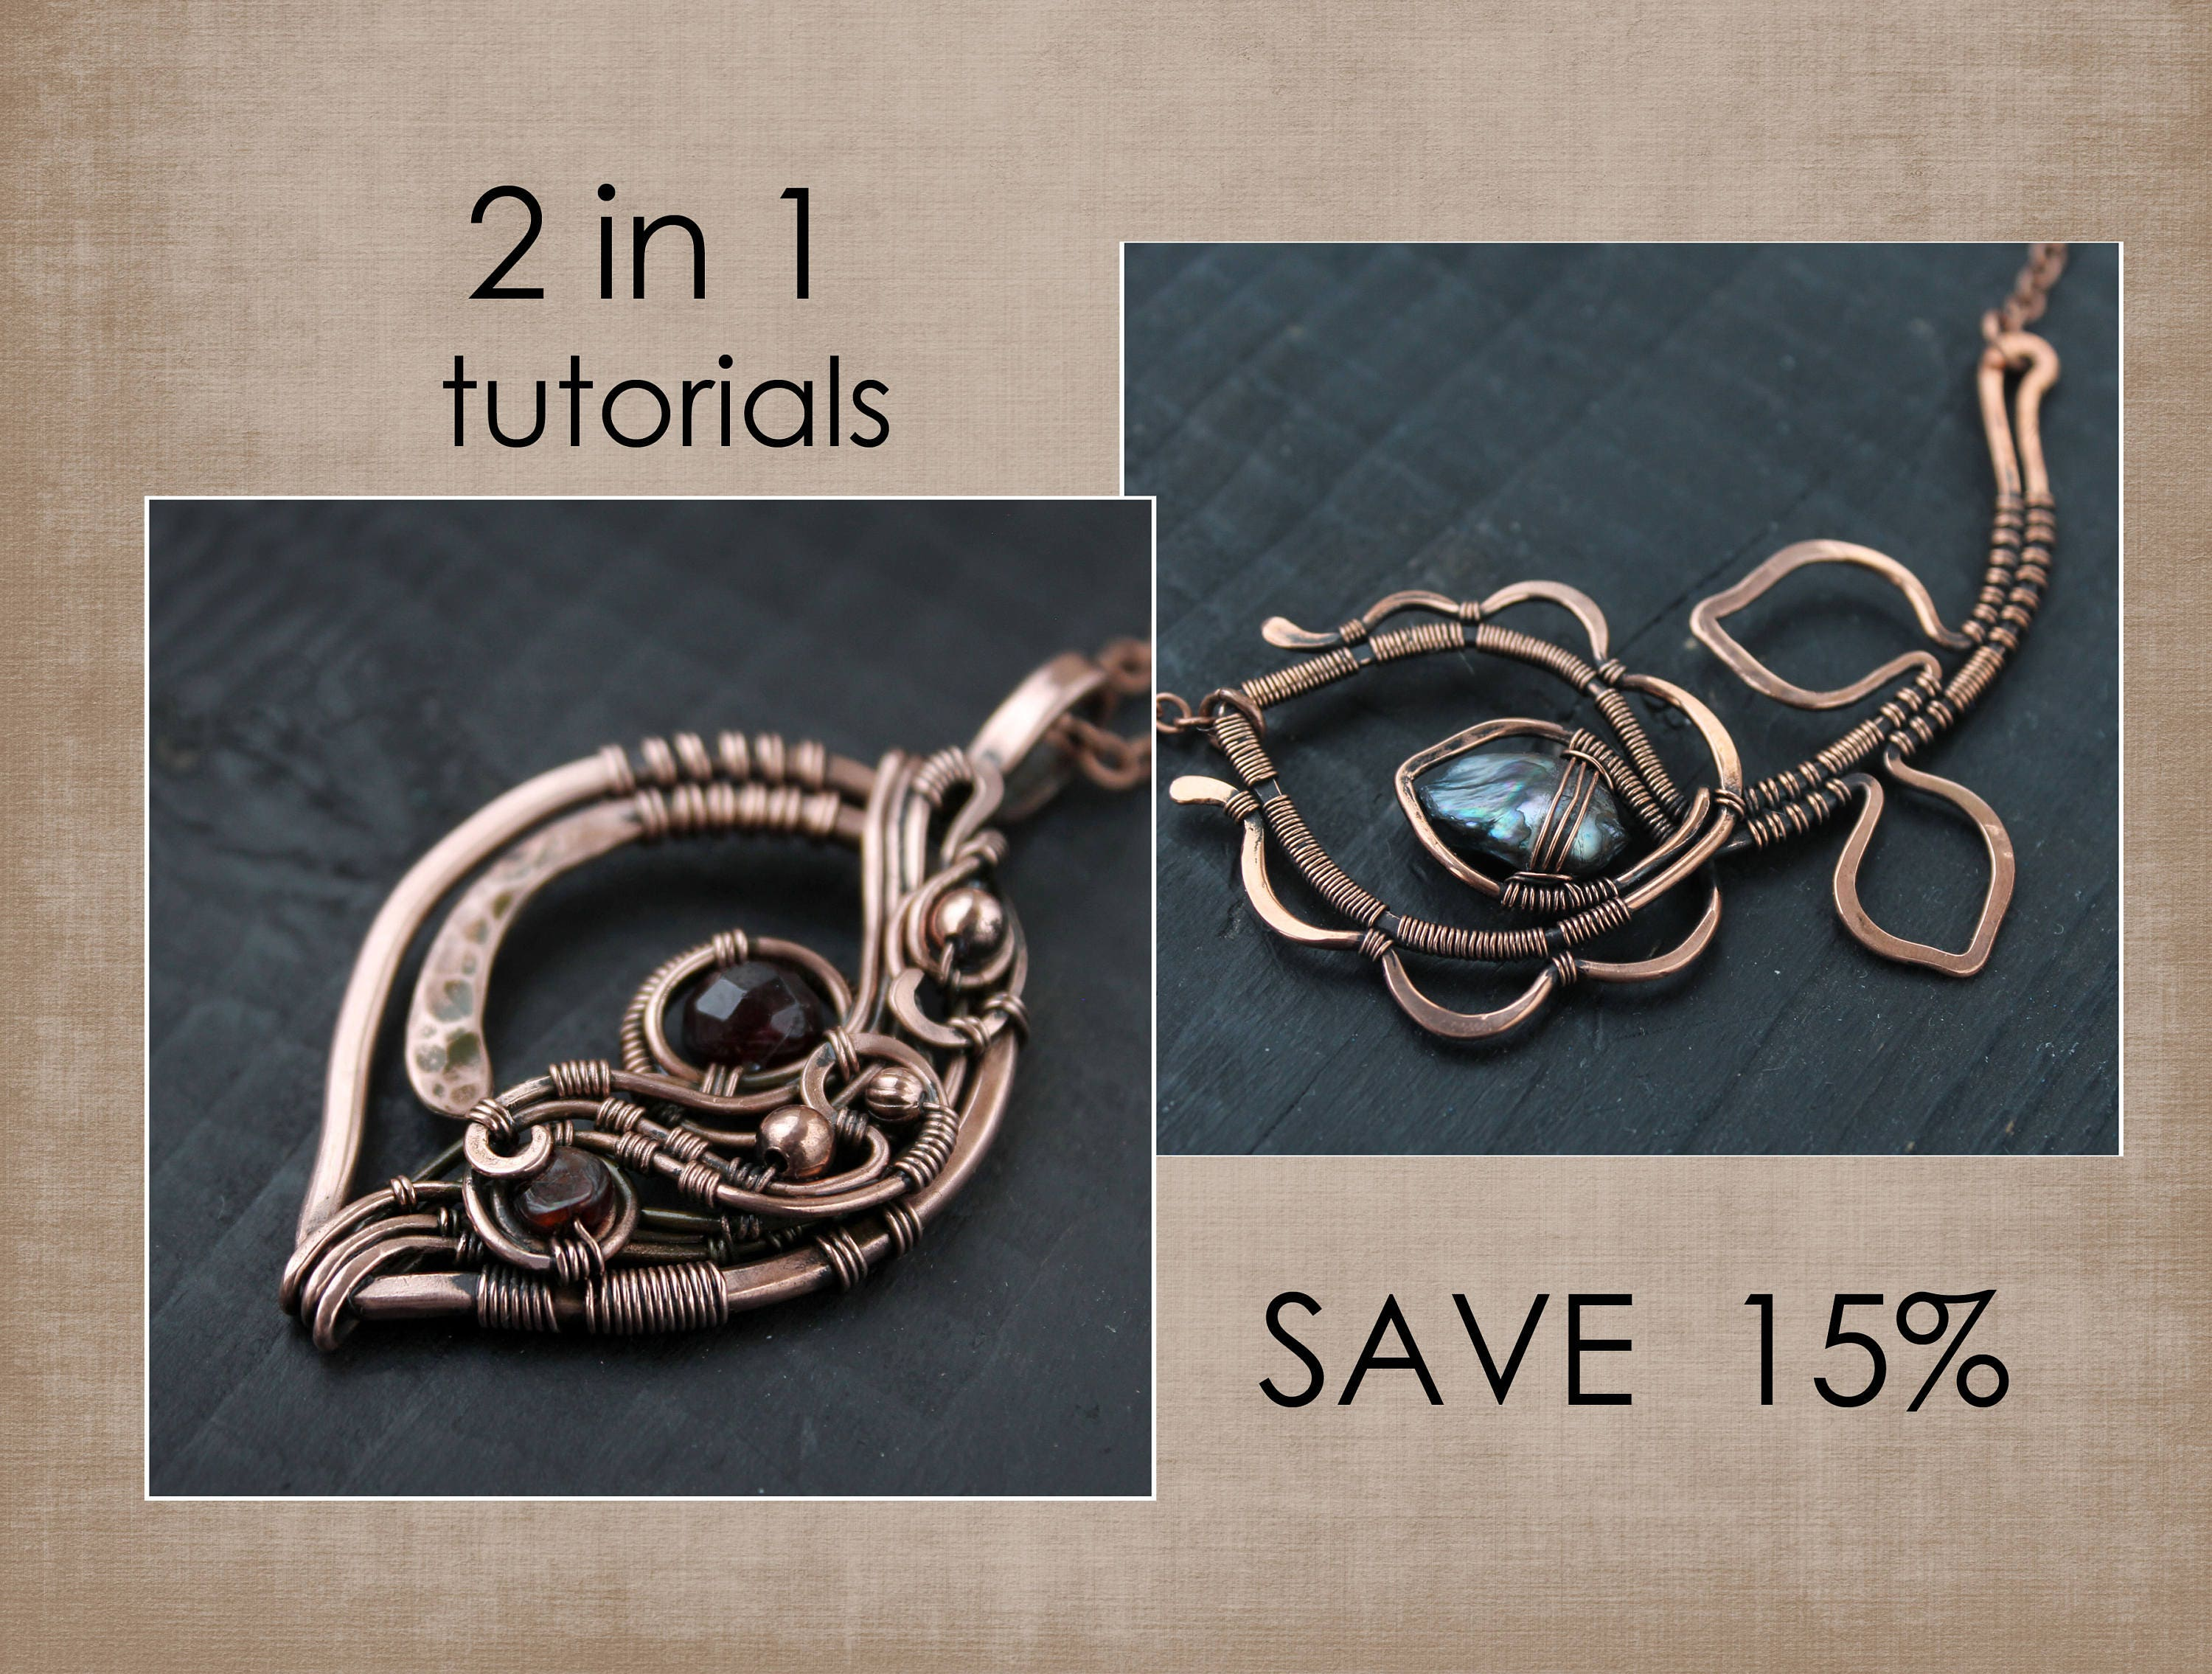 Famous Wire Jewelry Making Tutorials Composition - The Wire - magnox ...